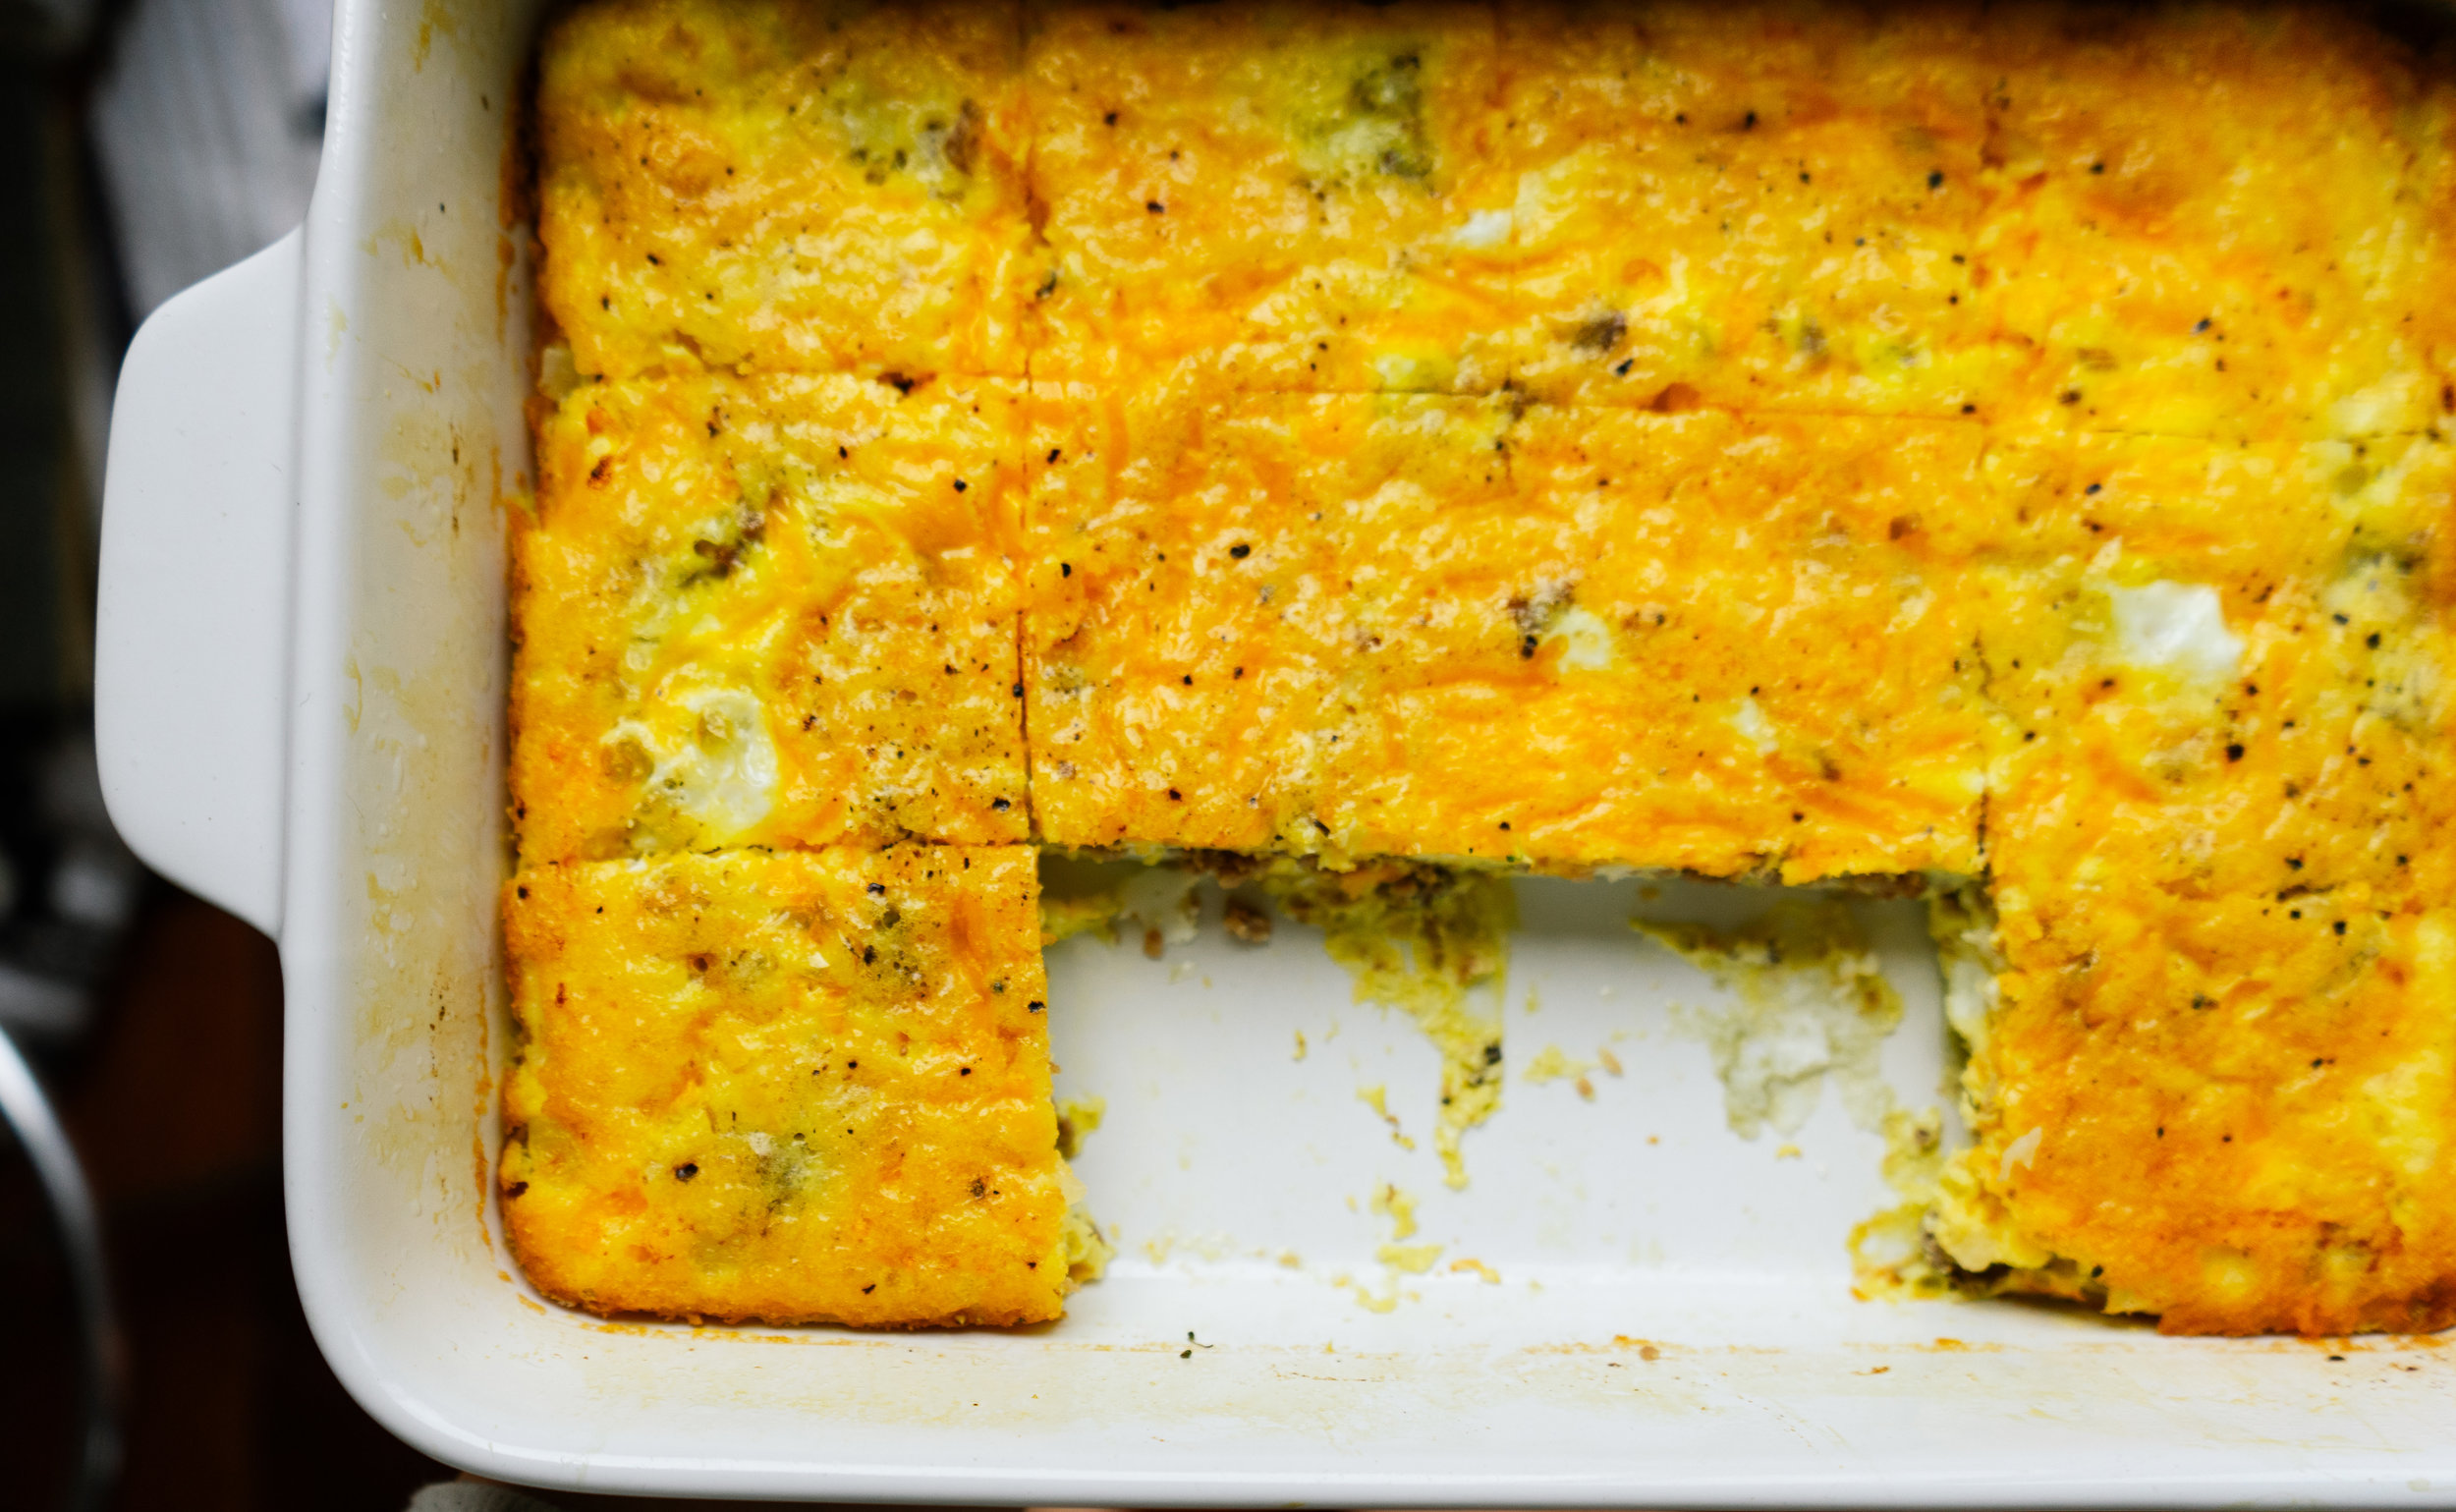 Cheeseburger breakfast casserole is a low carb breakfast meal prep recipe that you can prep once and enjoy at work or with your family. Made with simple,  low carb high fat ingredients this delicious dish comes together in less than 45 minutes.